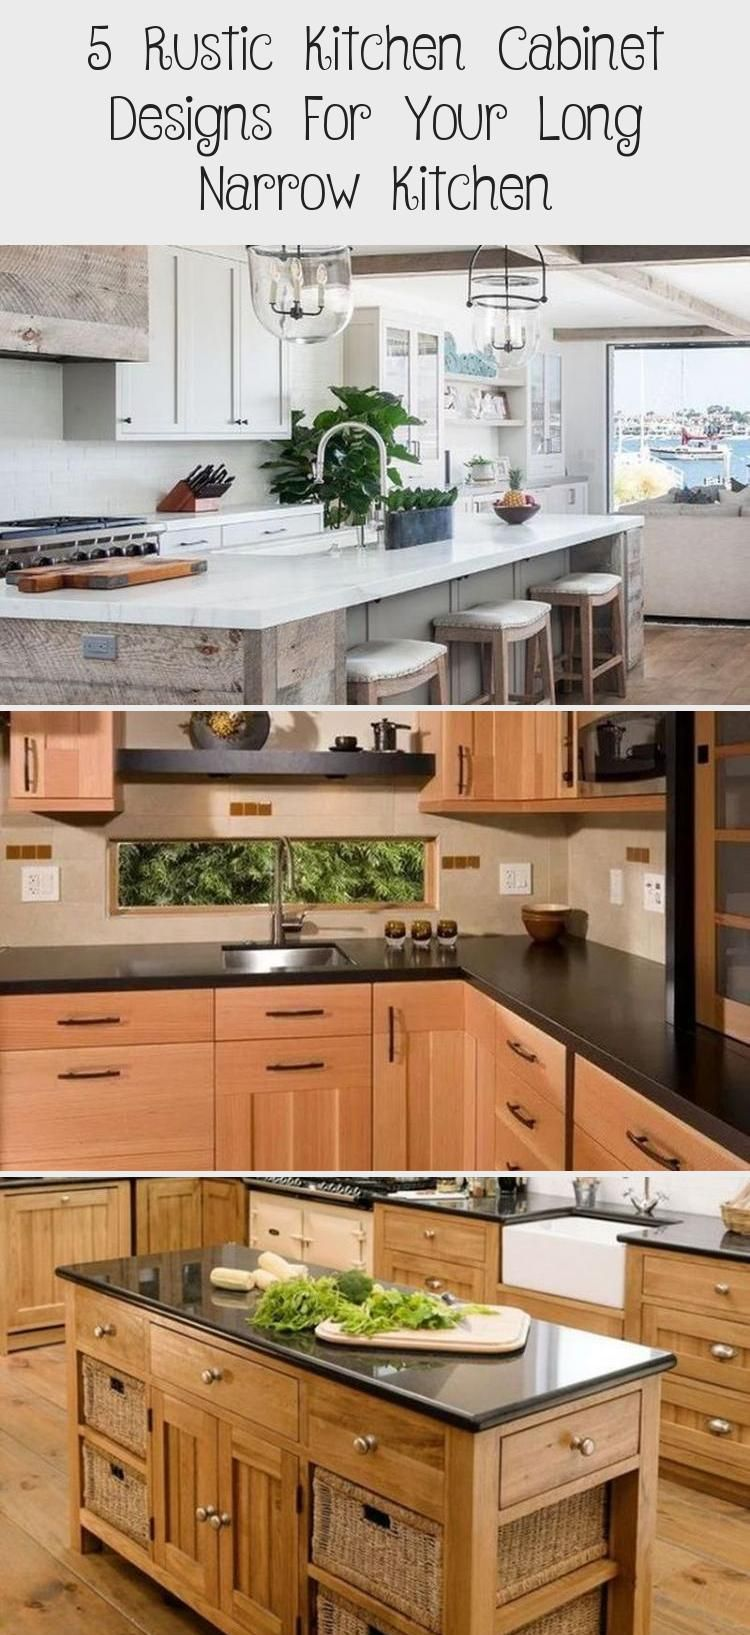 5 Rustic Kitchen Cabinet Designs for your Long Narrow Kitchen # #DesignsforyourLongNarrowKitchen, #Interior Design #Modularkitchendesign #kitchendesignVideos #Luxurykitchendesign #kitchendesignWall #Cottagekitchendesign #longnarrowkitchen